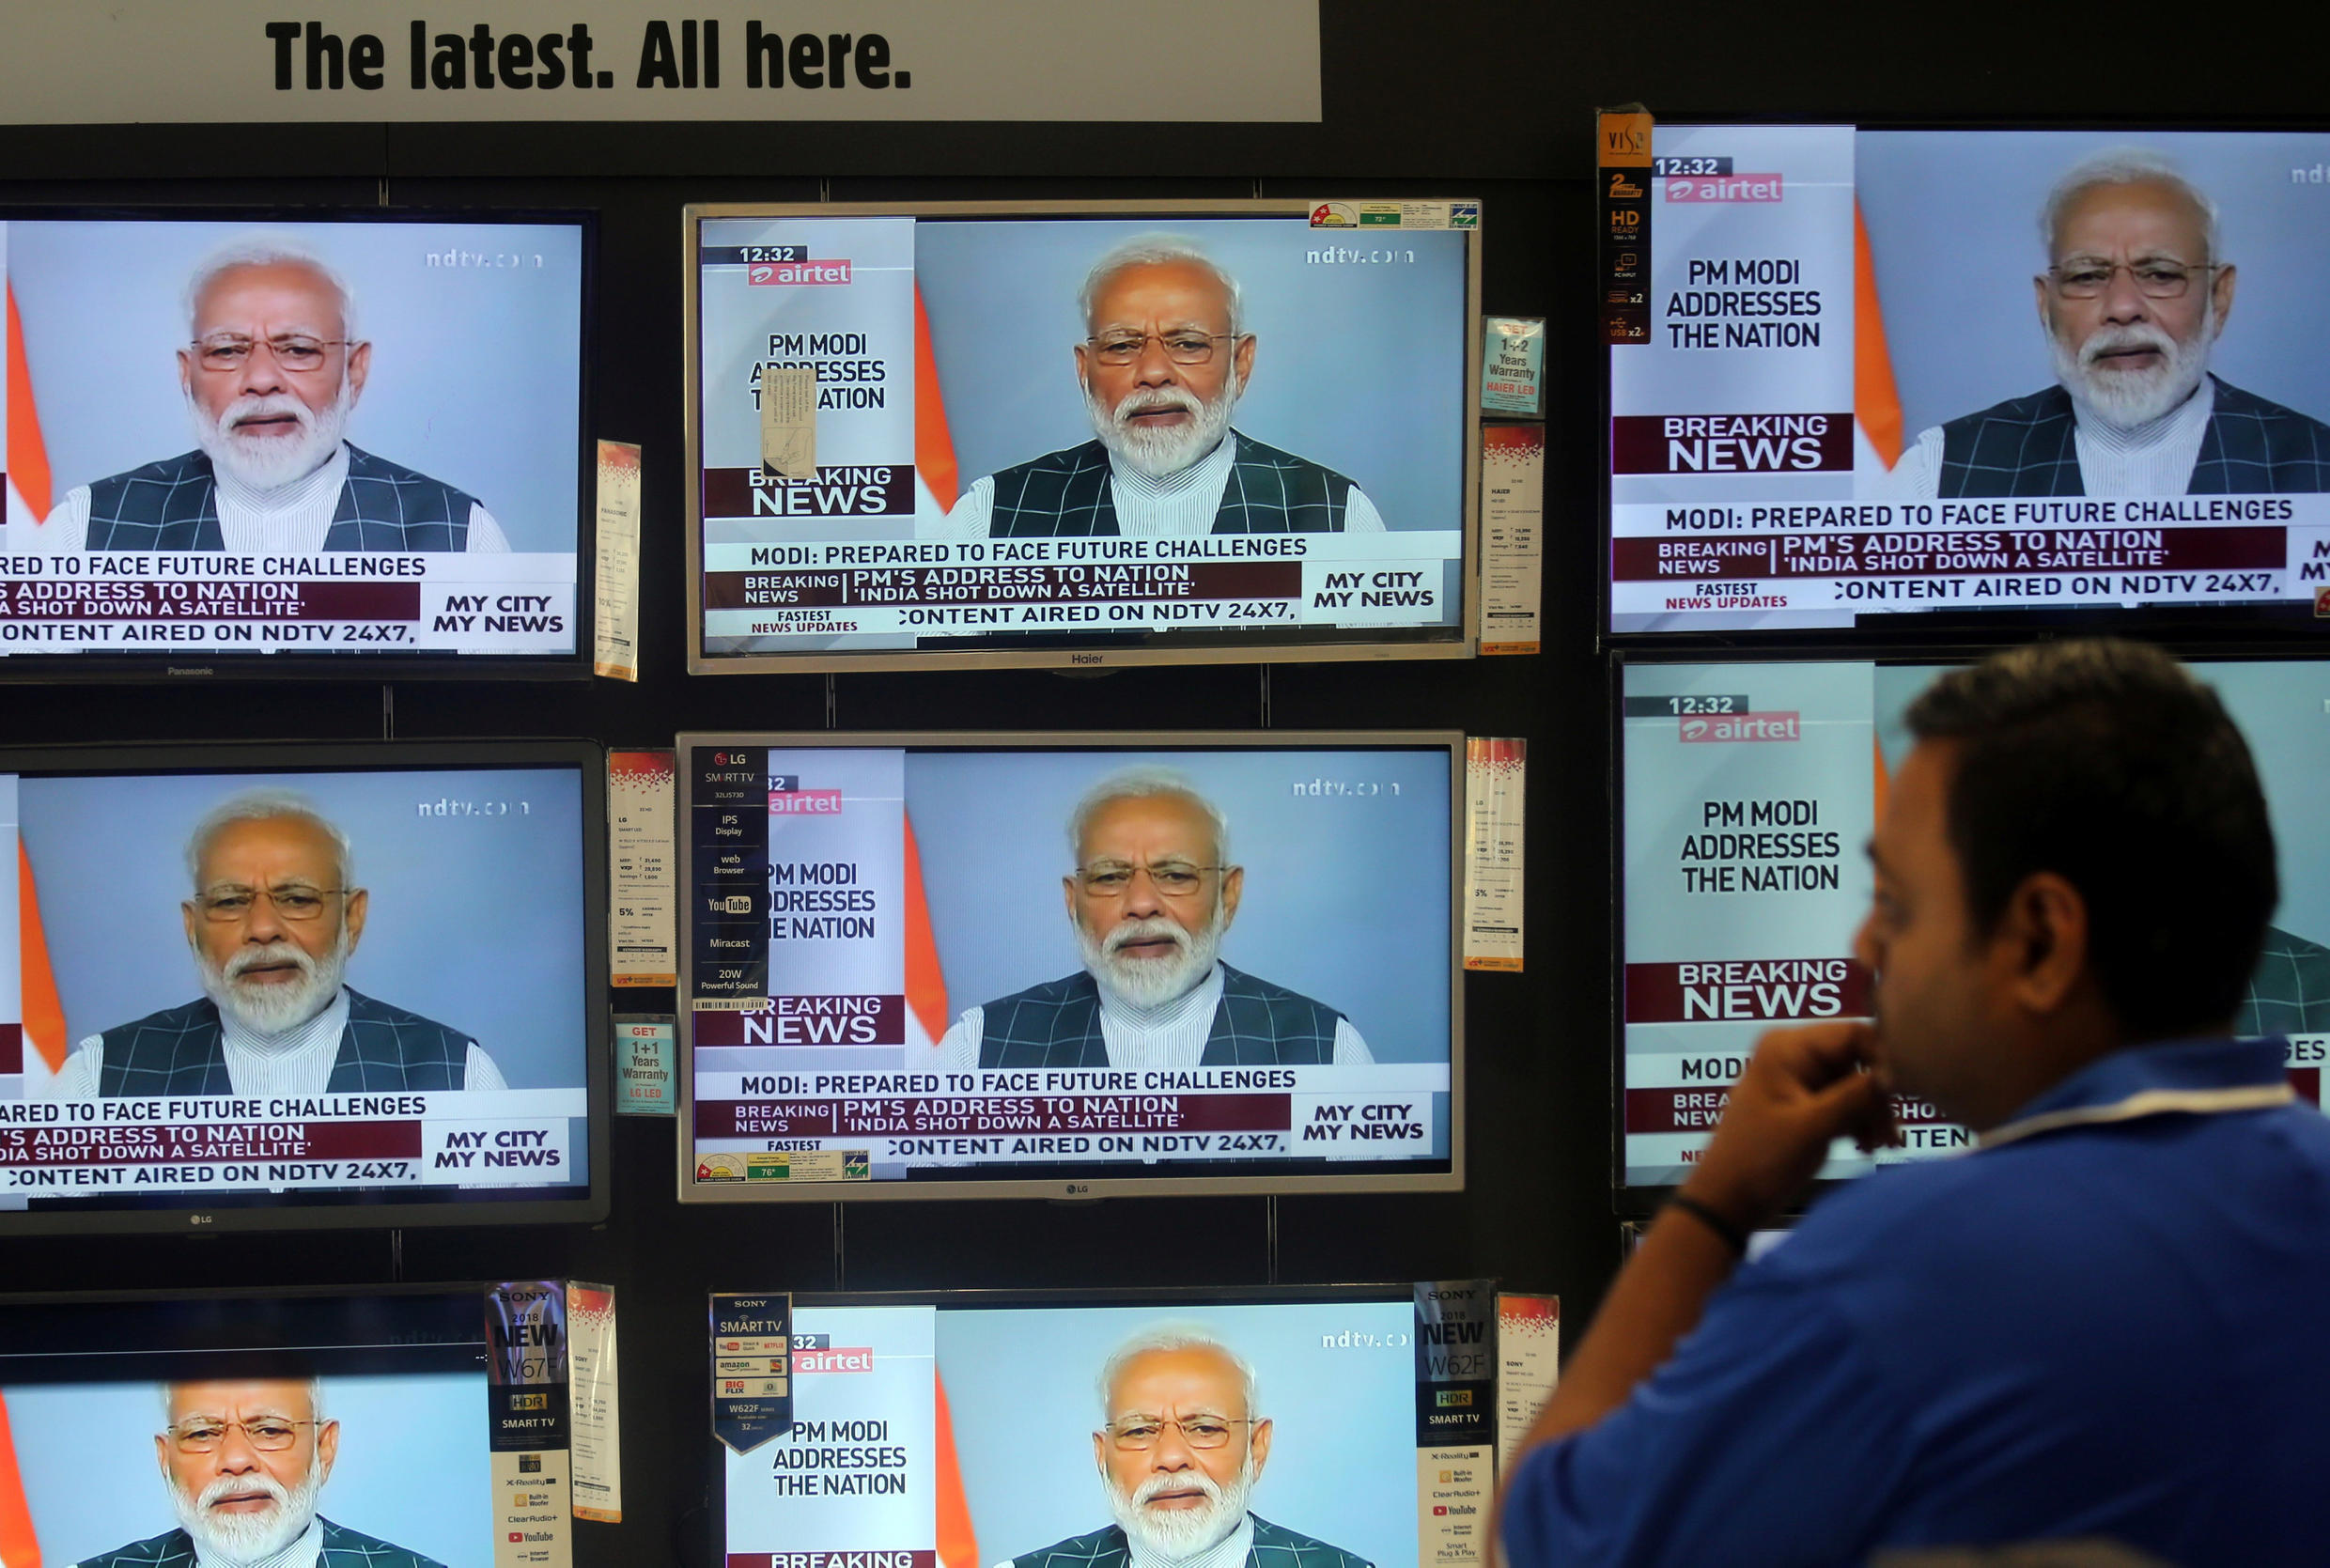 A man watches Prime Minister Narendra Modi addressing to the nation, on TV screens inside a showroom in Mumbai